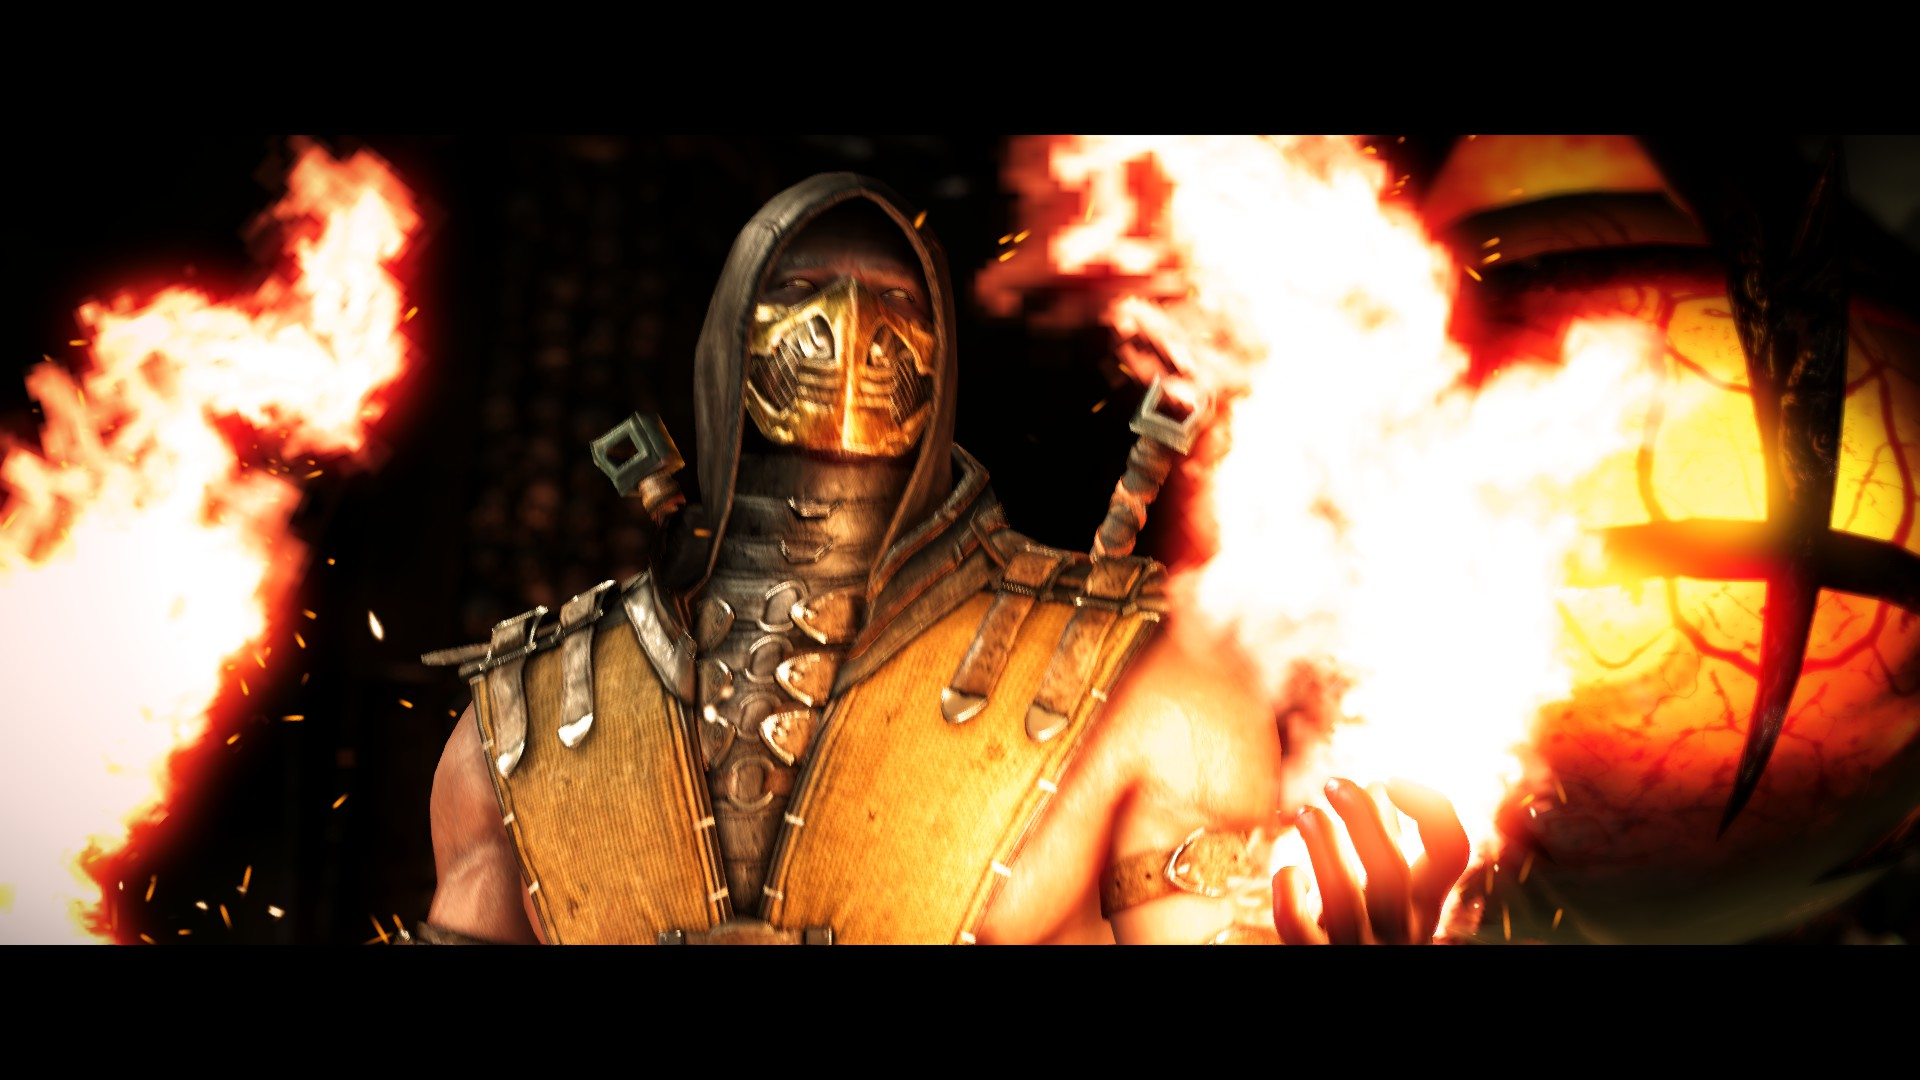 MKX really pushes Unreal Engine 3.